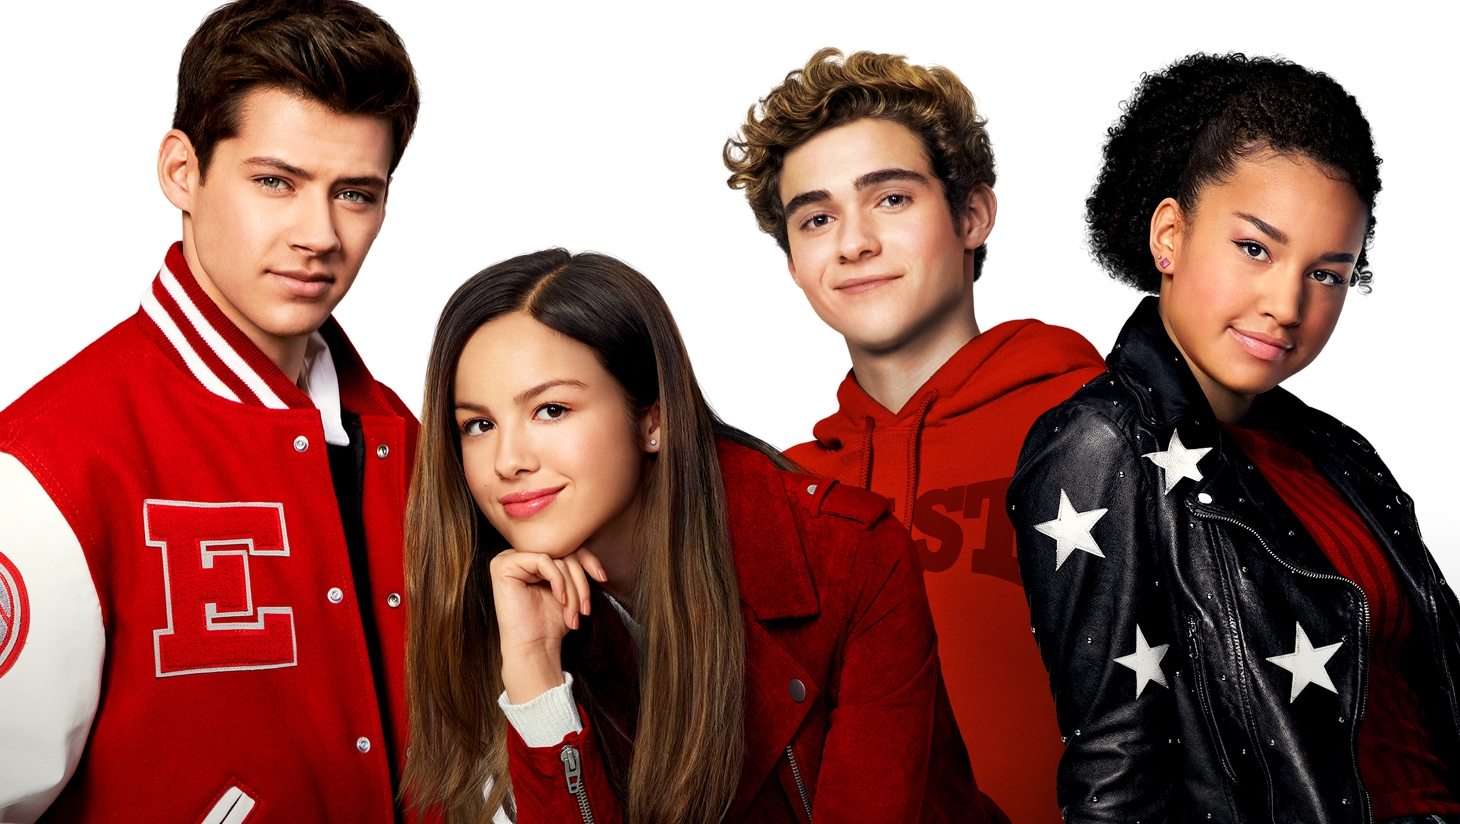 De cast van High School Musical: The Musical: De serie